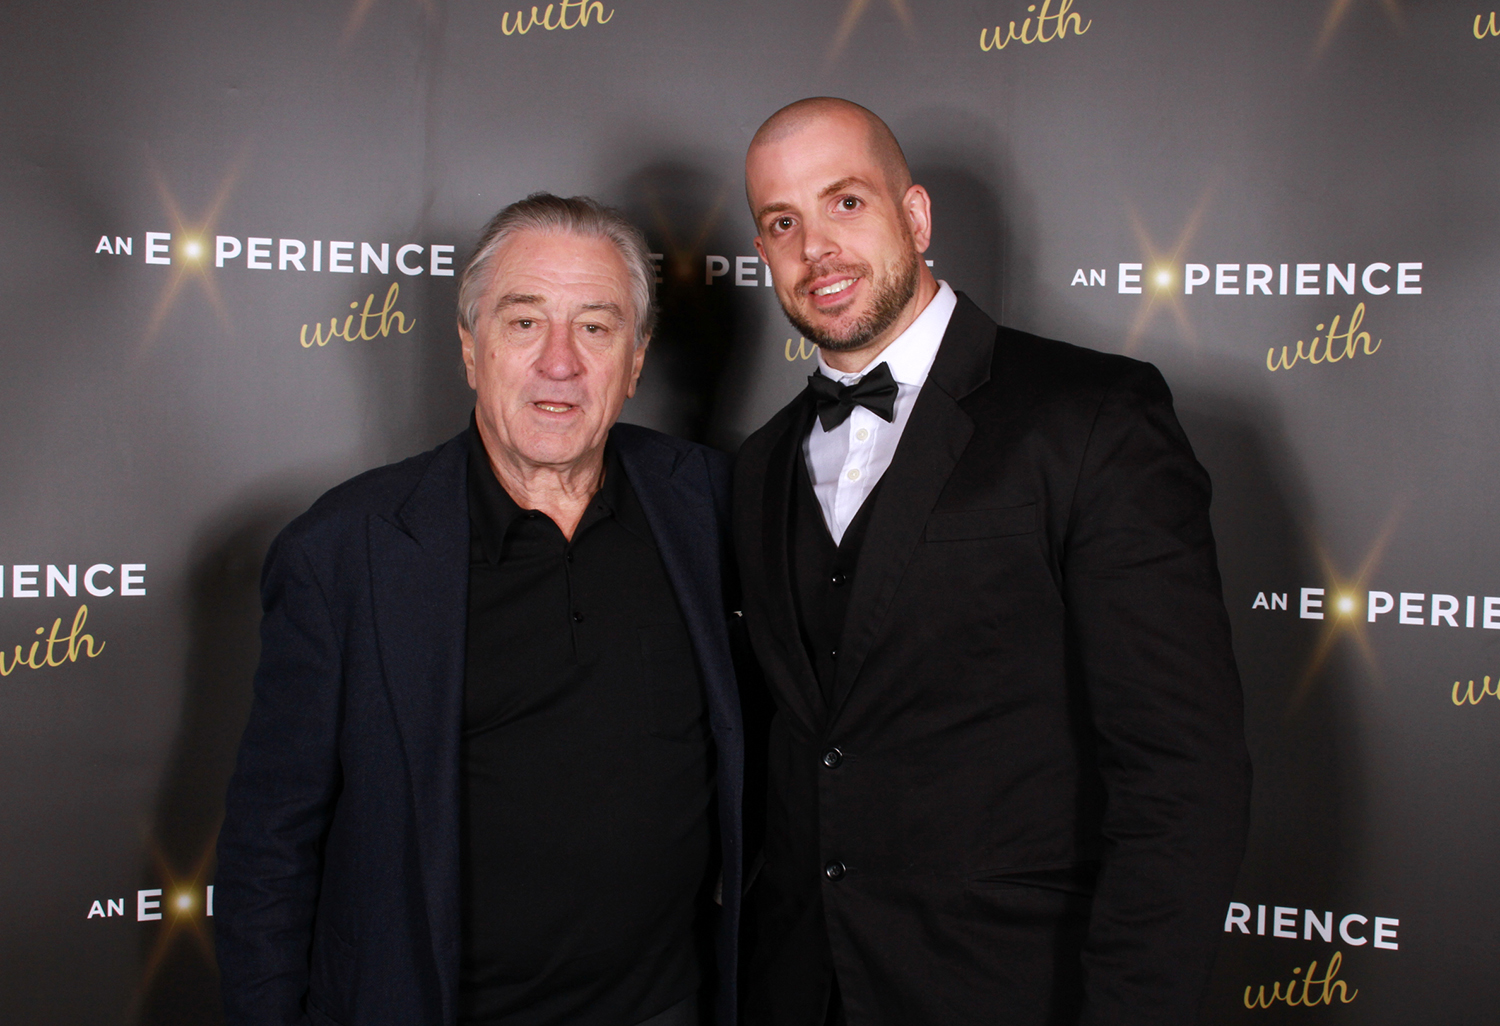 Meeting the amazing Robert De Niro after getting my paintings signed. By Craig Mackay